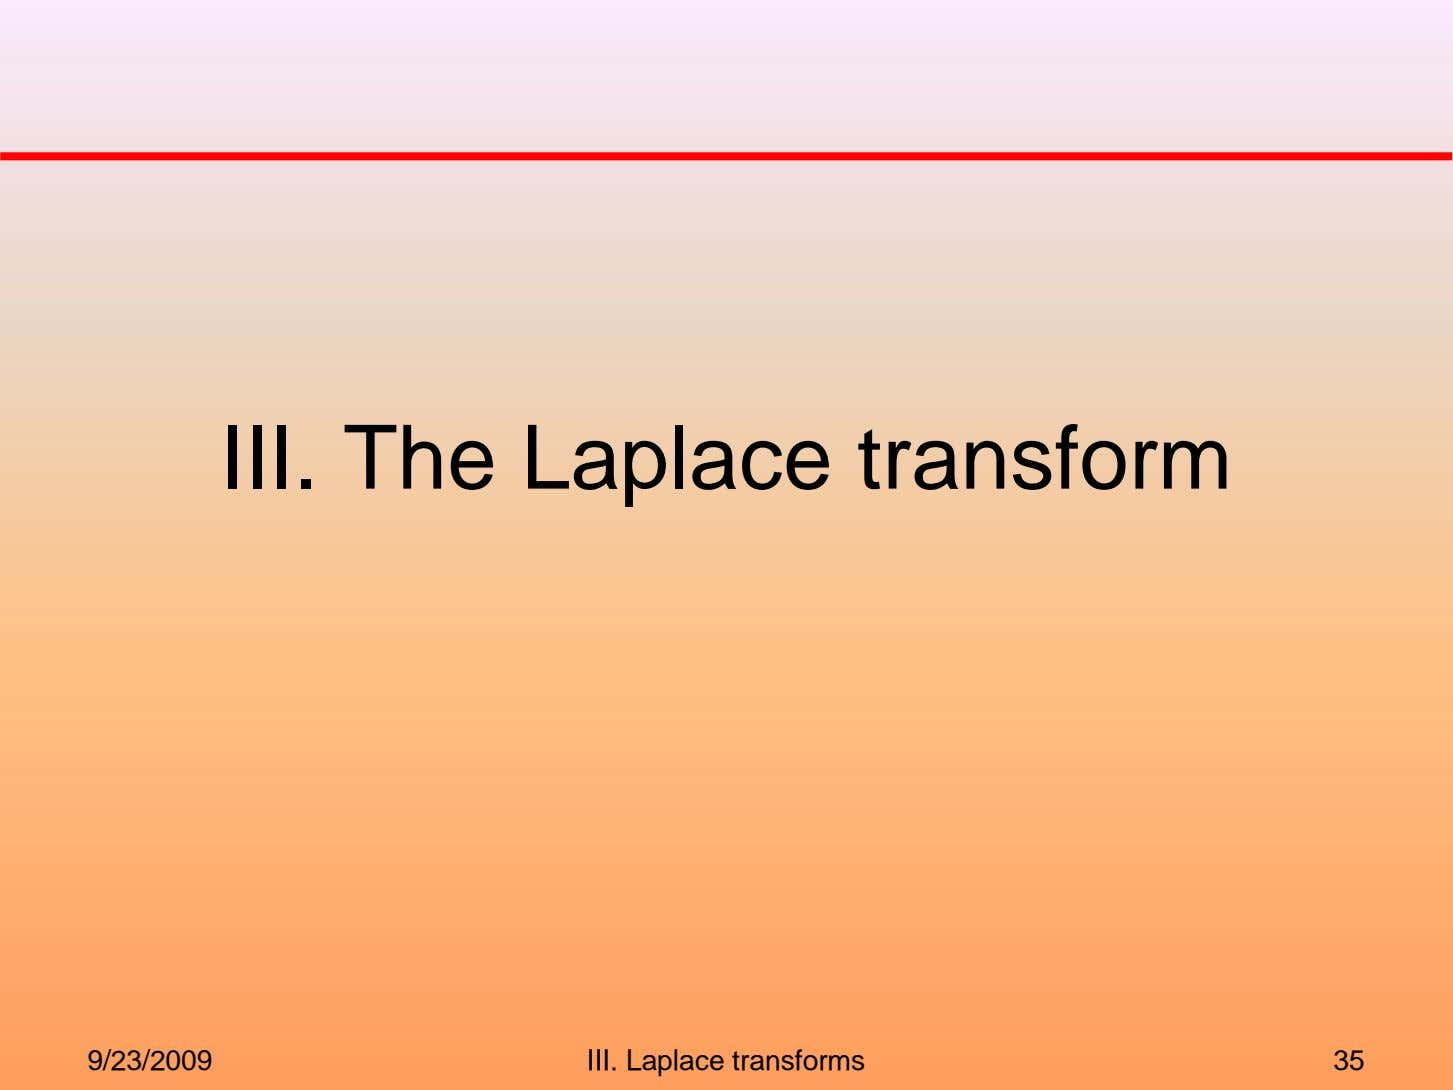 III. The Laplace transform 9/23/2009 III. Laplace transforms 35